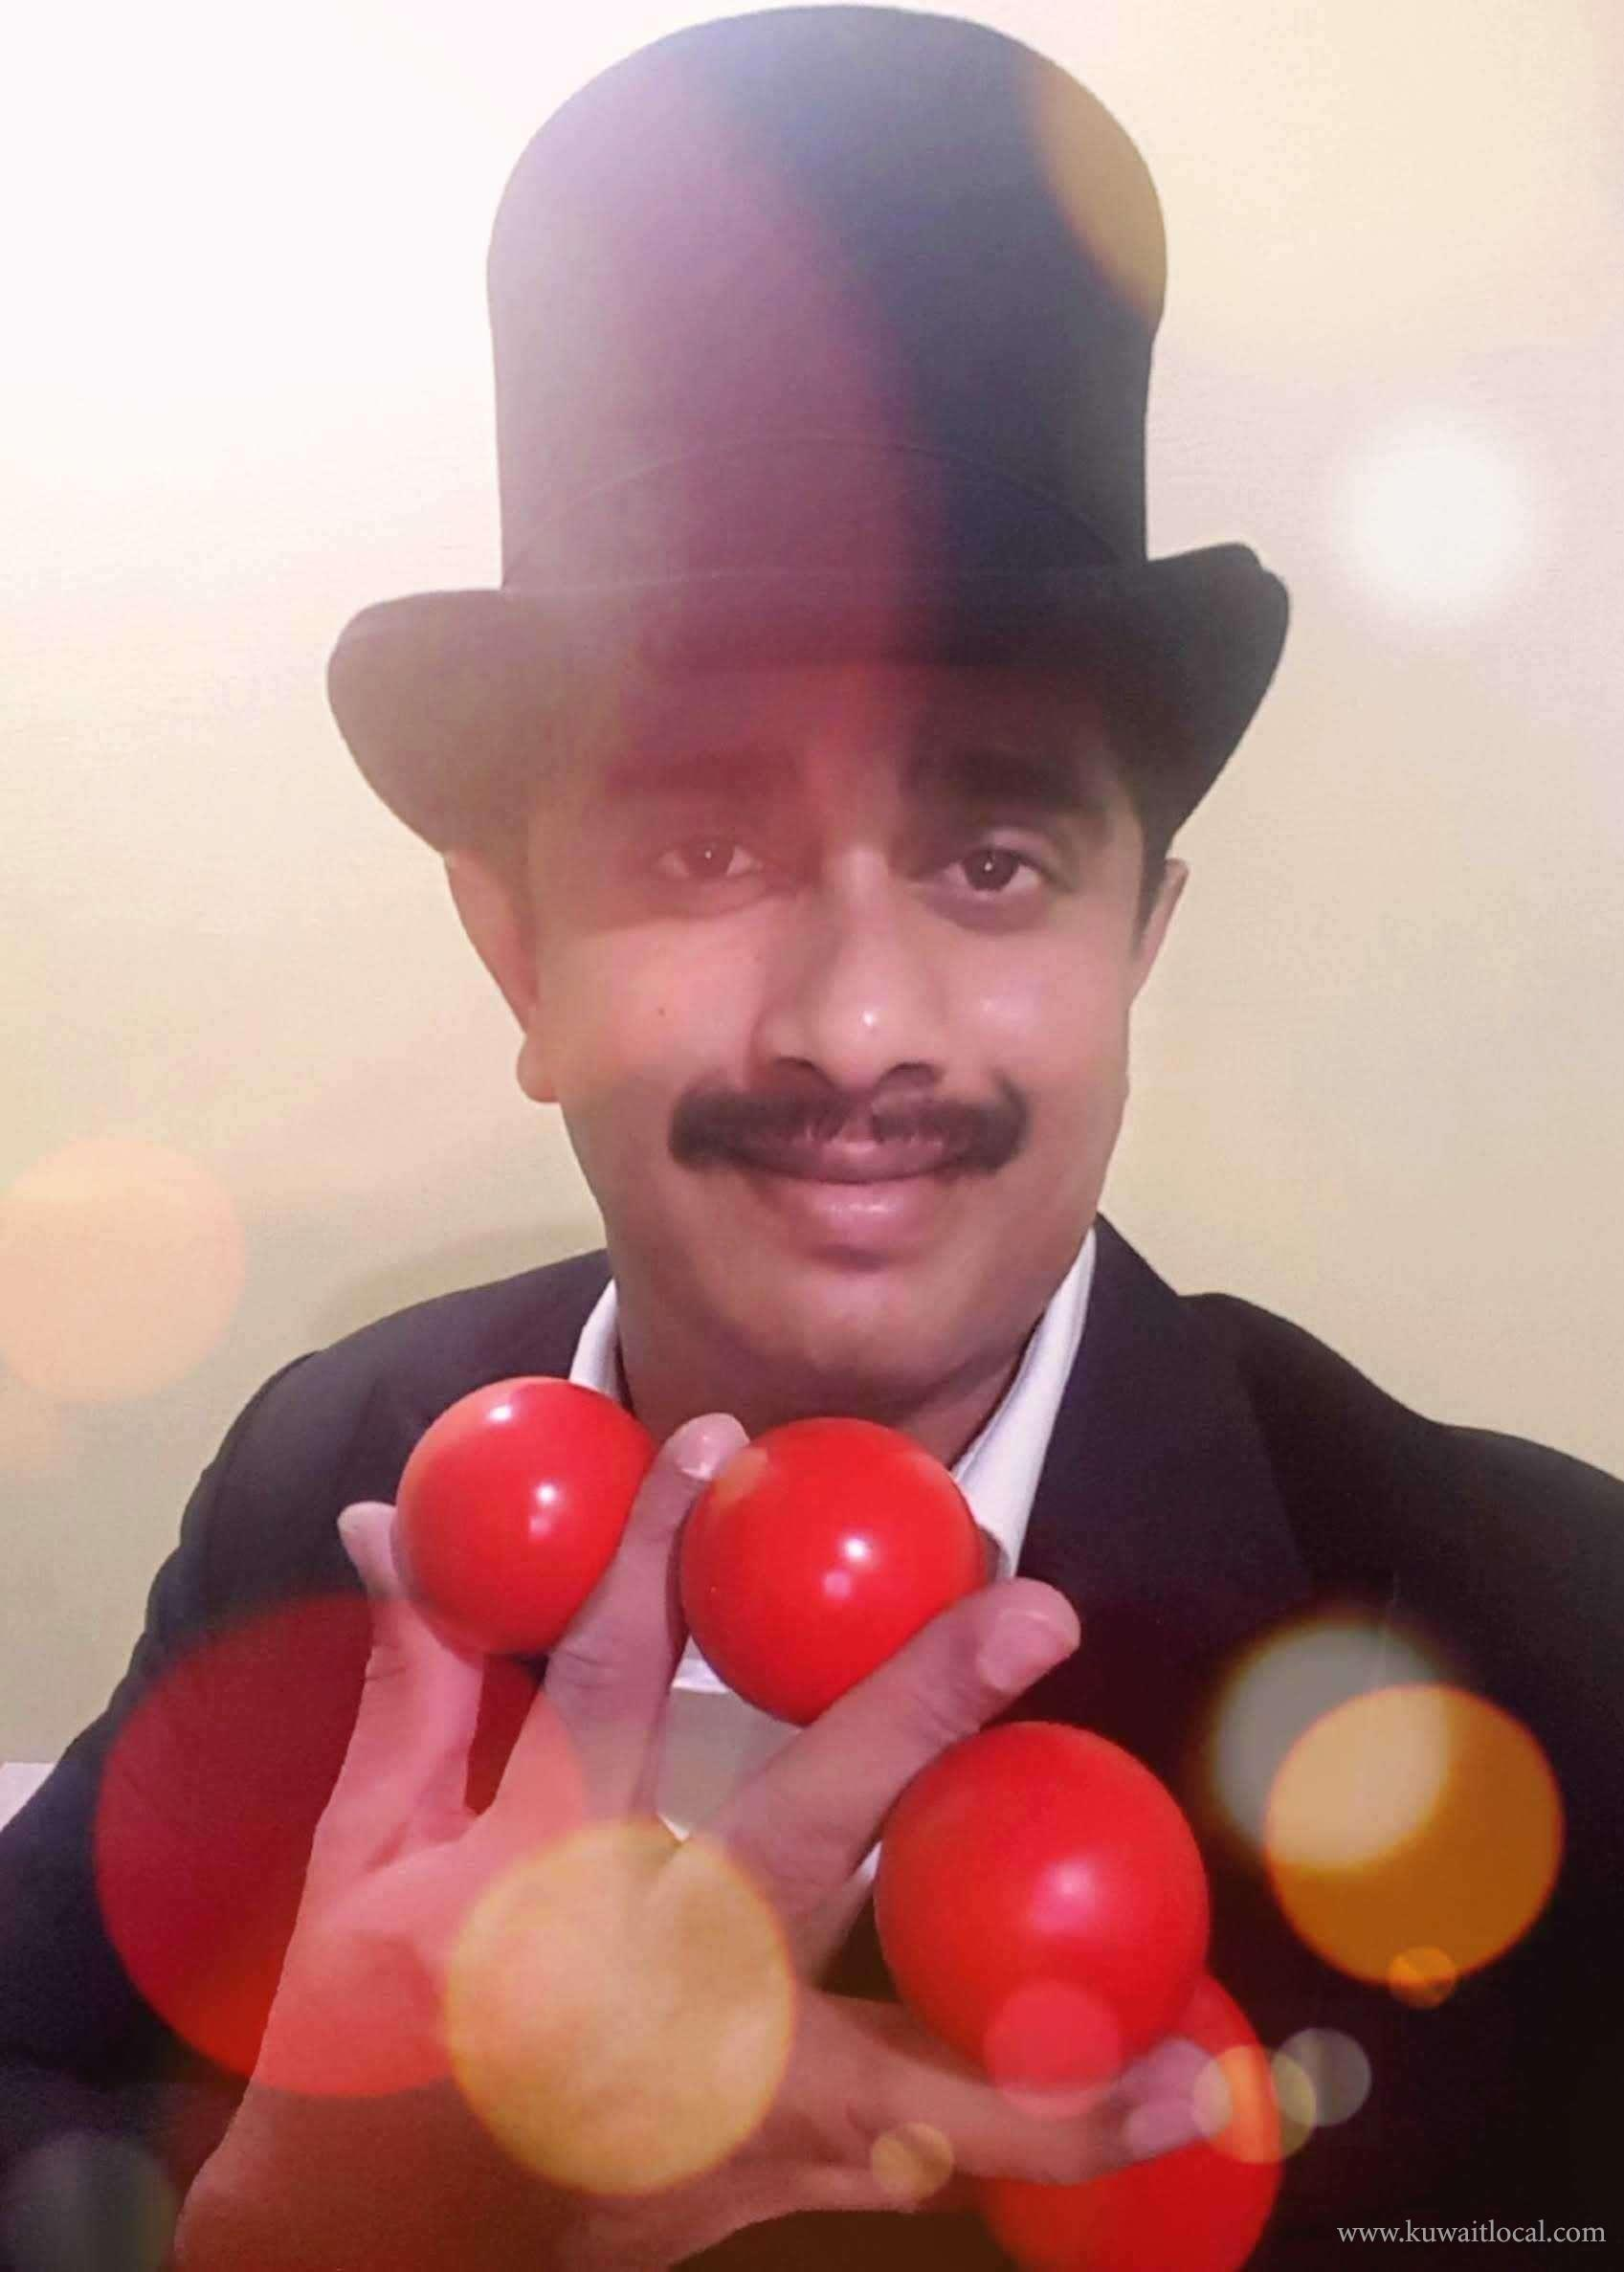 PROFESSIONAL-MAGIC-SHOWS-FOR-BIRTHDAY-PARTIES-AND-ALL-OCCASIONS-kuwait